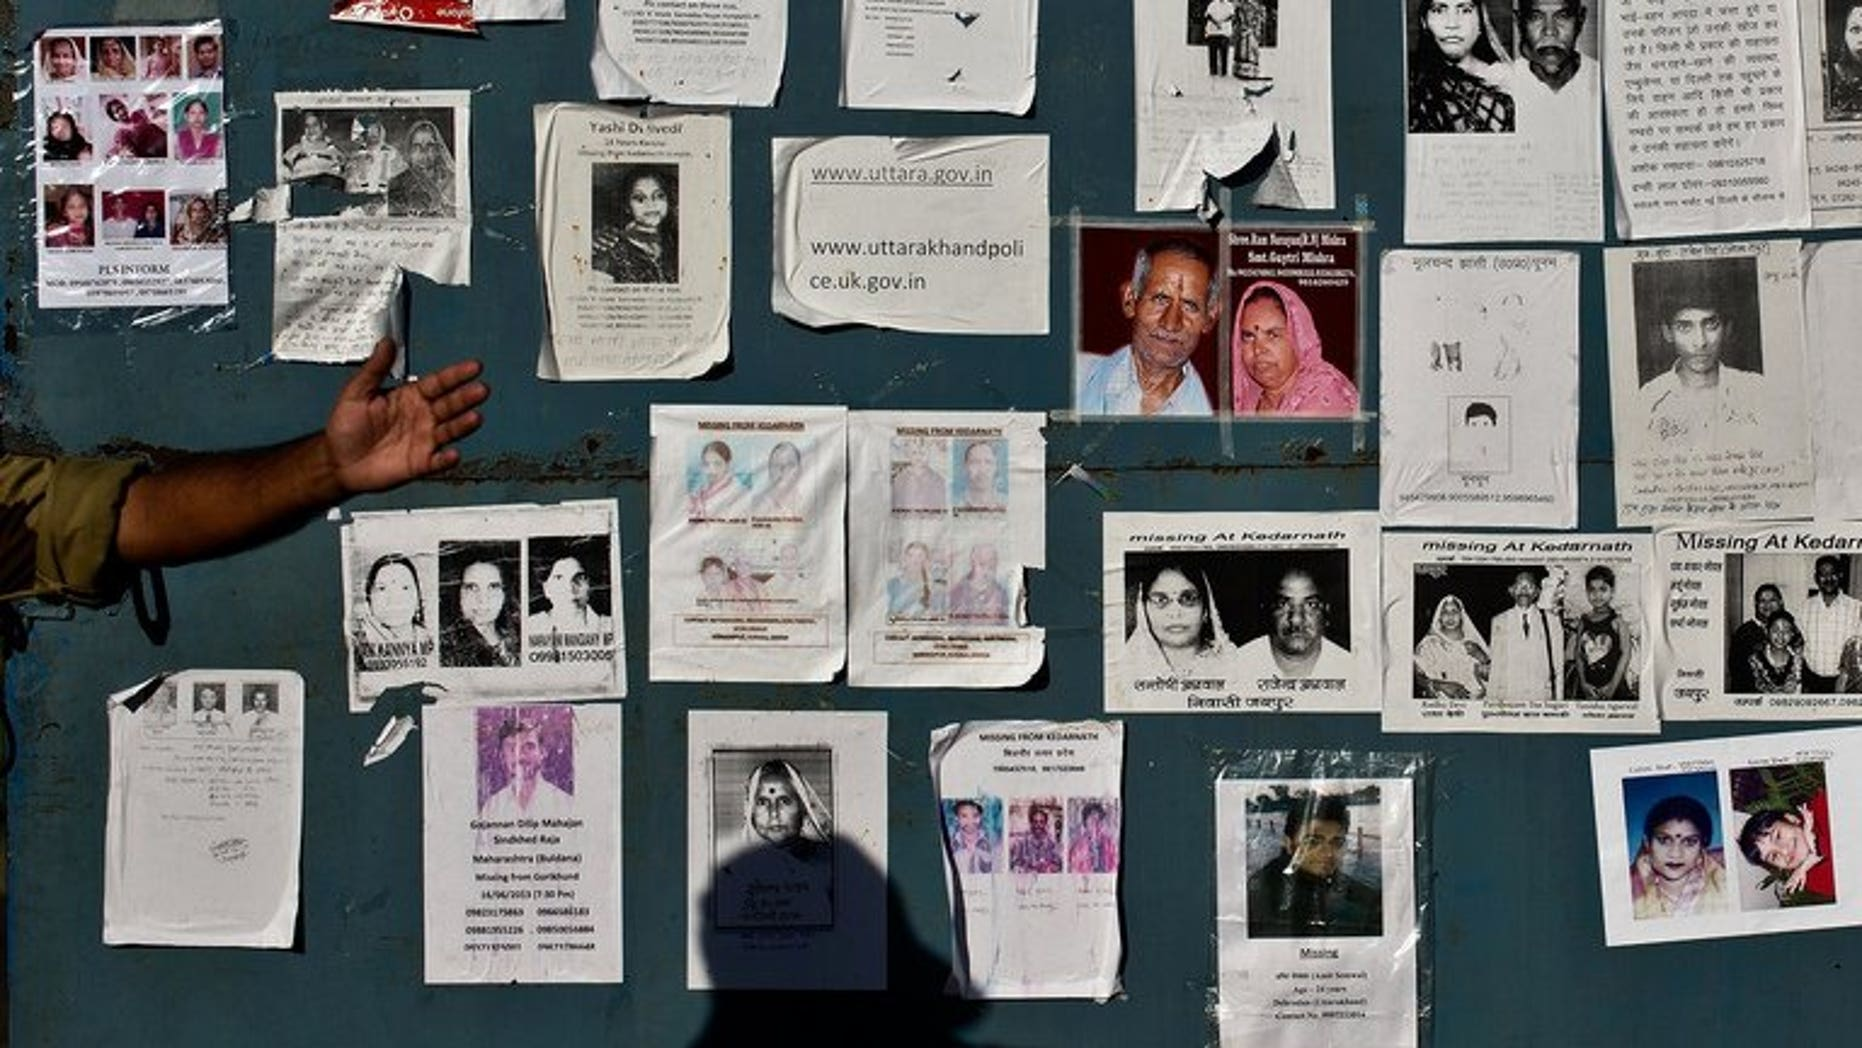 Portraits of missing pilgrims are seen on the gates of the Jolly Grant Airport in Dehradun, Nepal, on June 26, 2013. The death toll from recent floods triggered by heavy monsoon downpours in Nepal has climbed to at least 60, police told AFP.